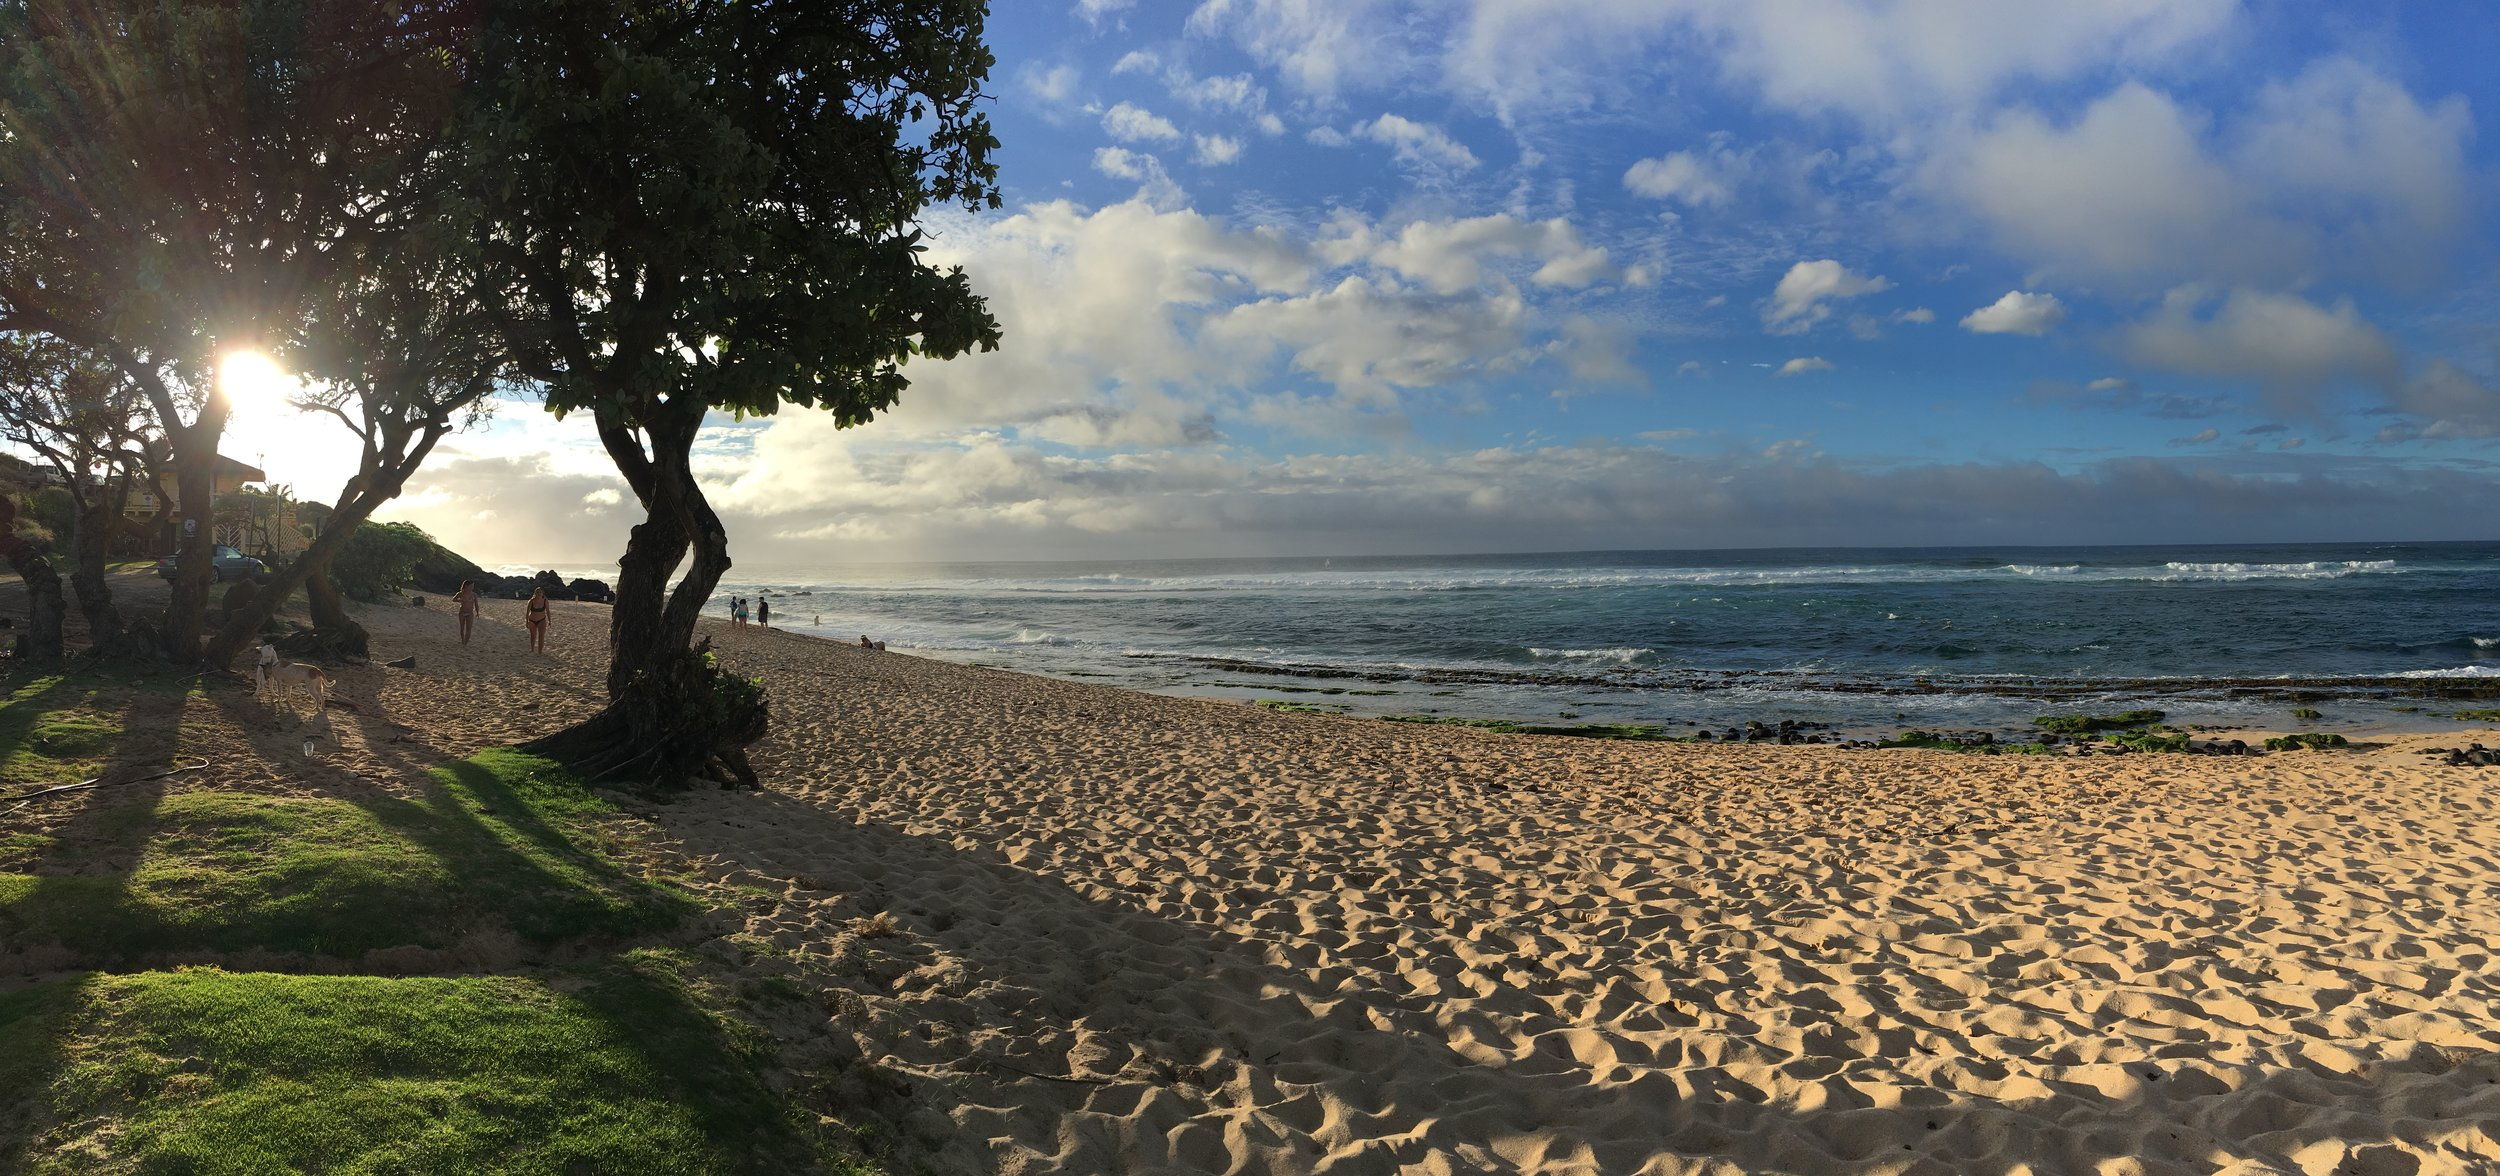 Ho'okipa Beach Park at the end of a spectacular day.